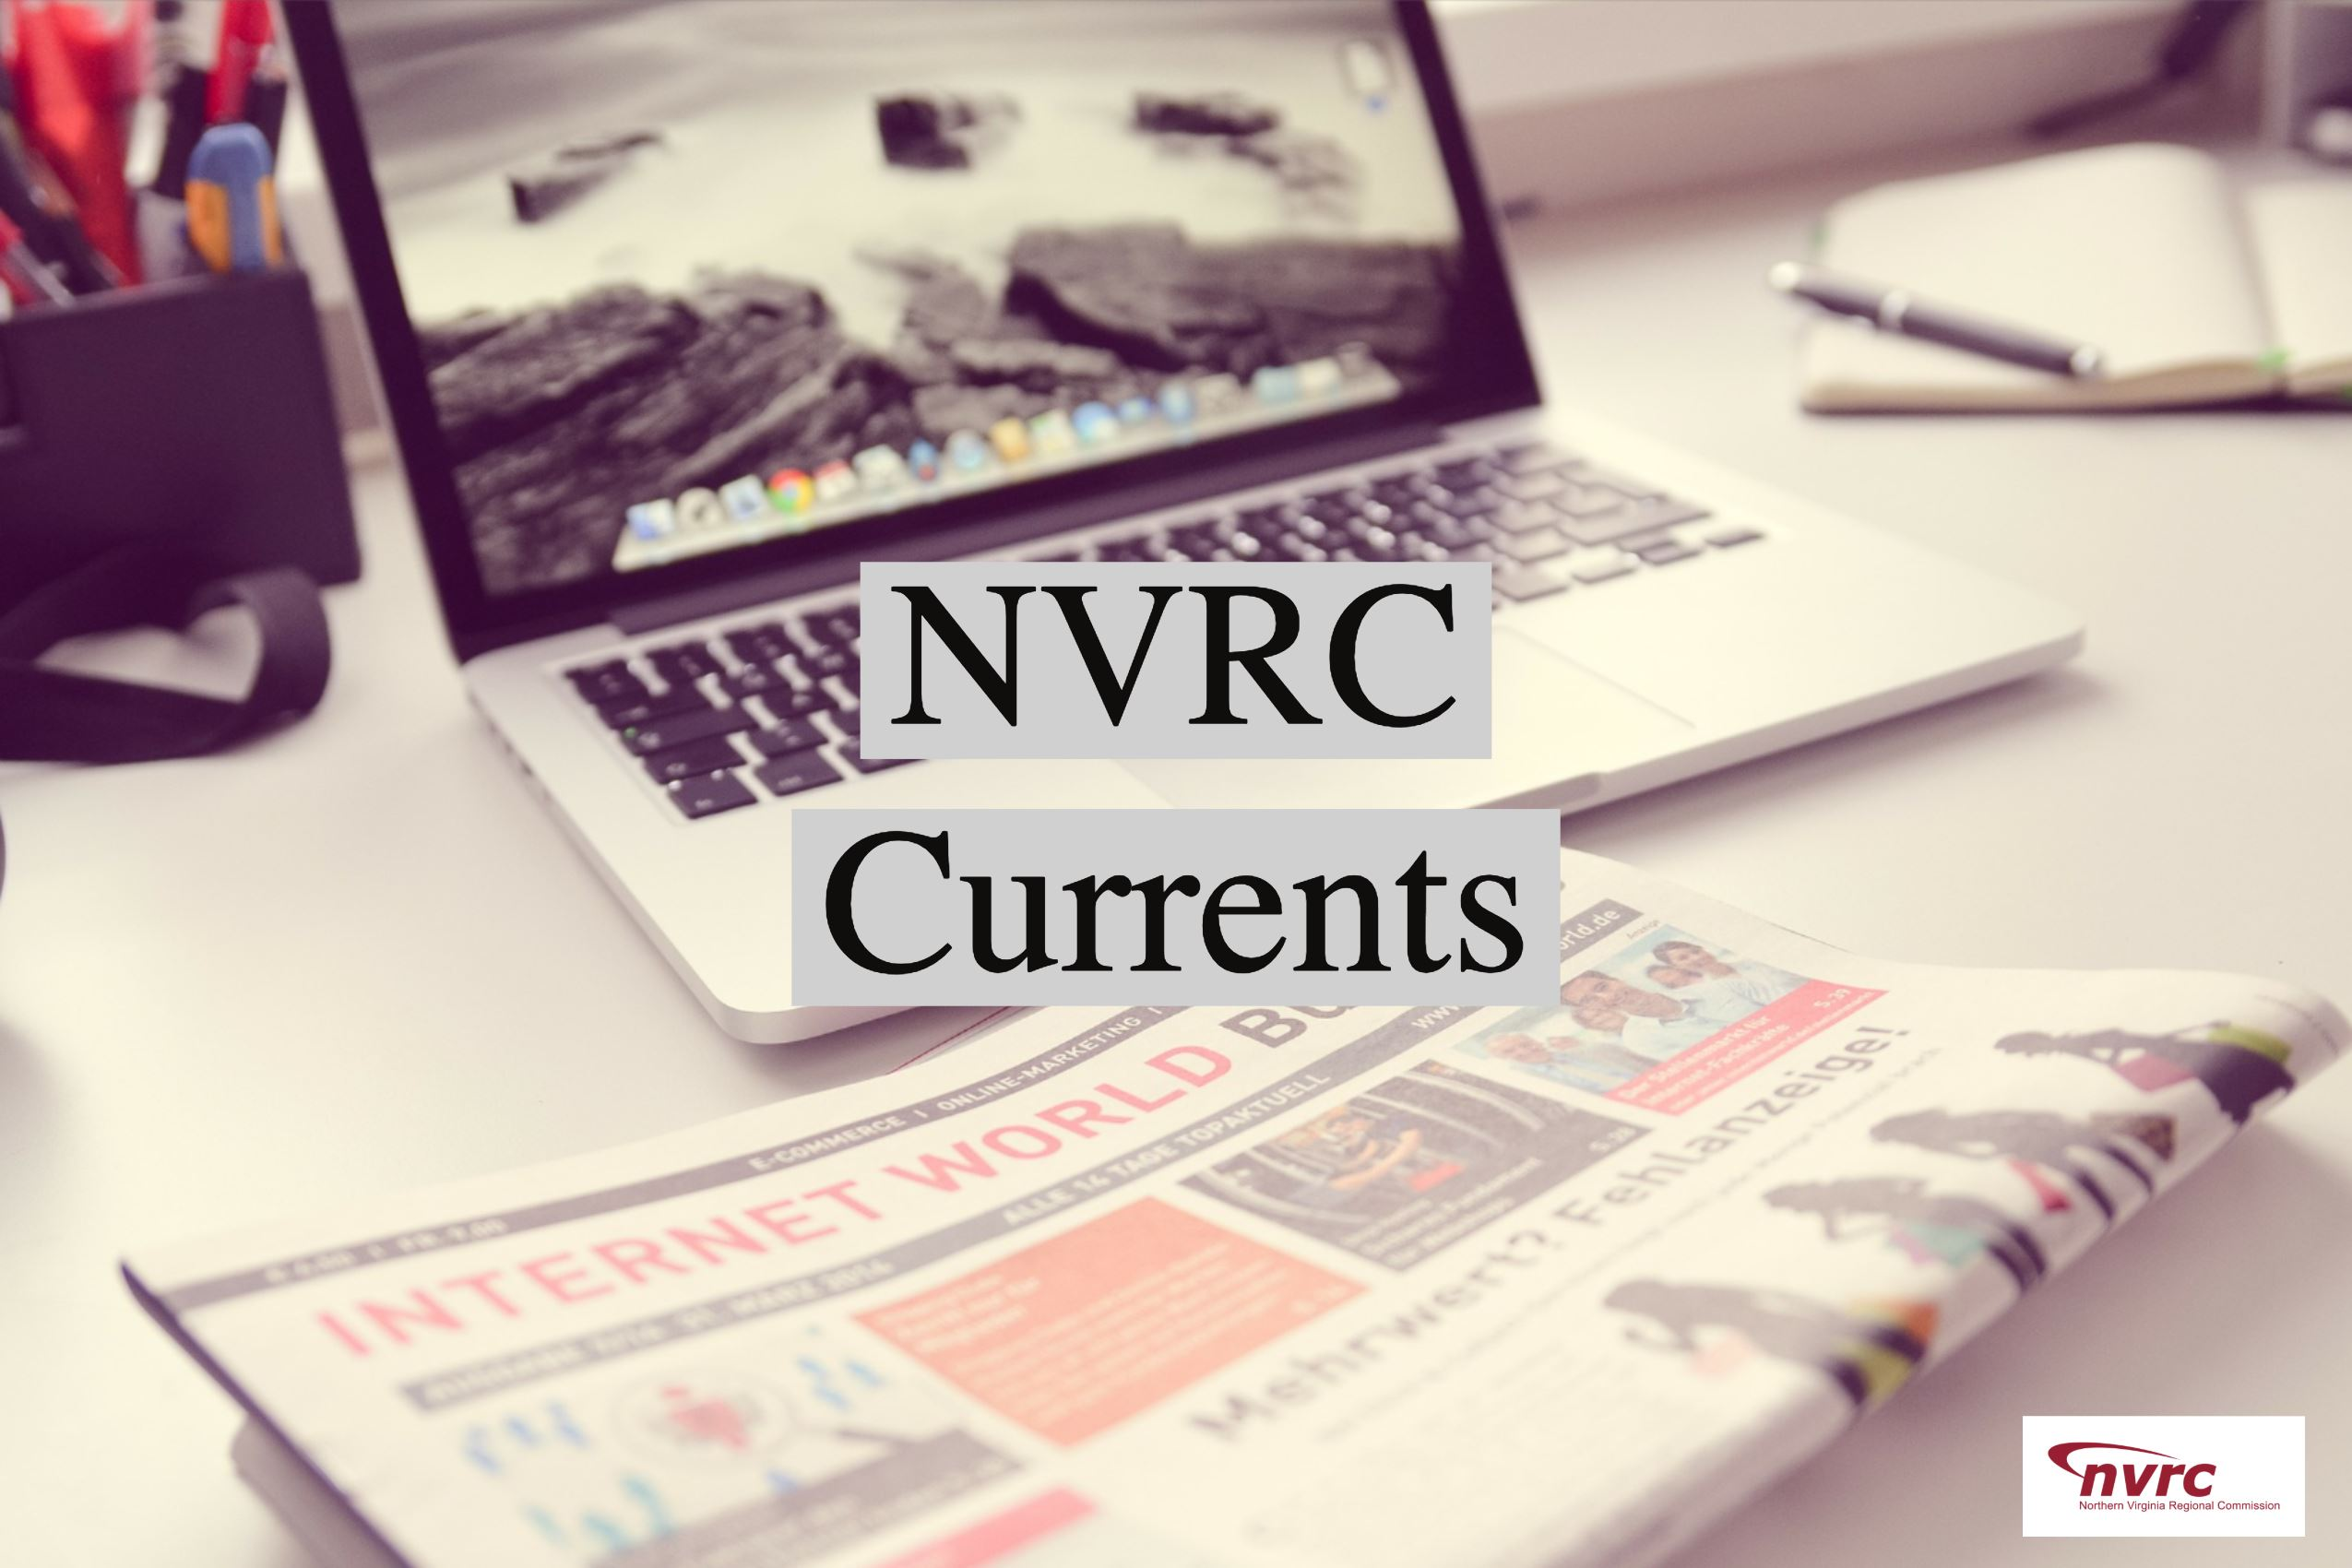 NVRC Currents